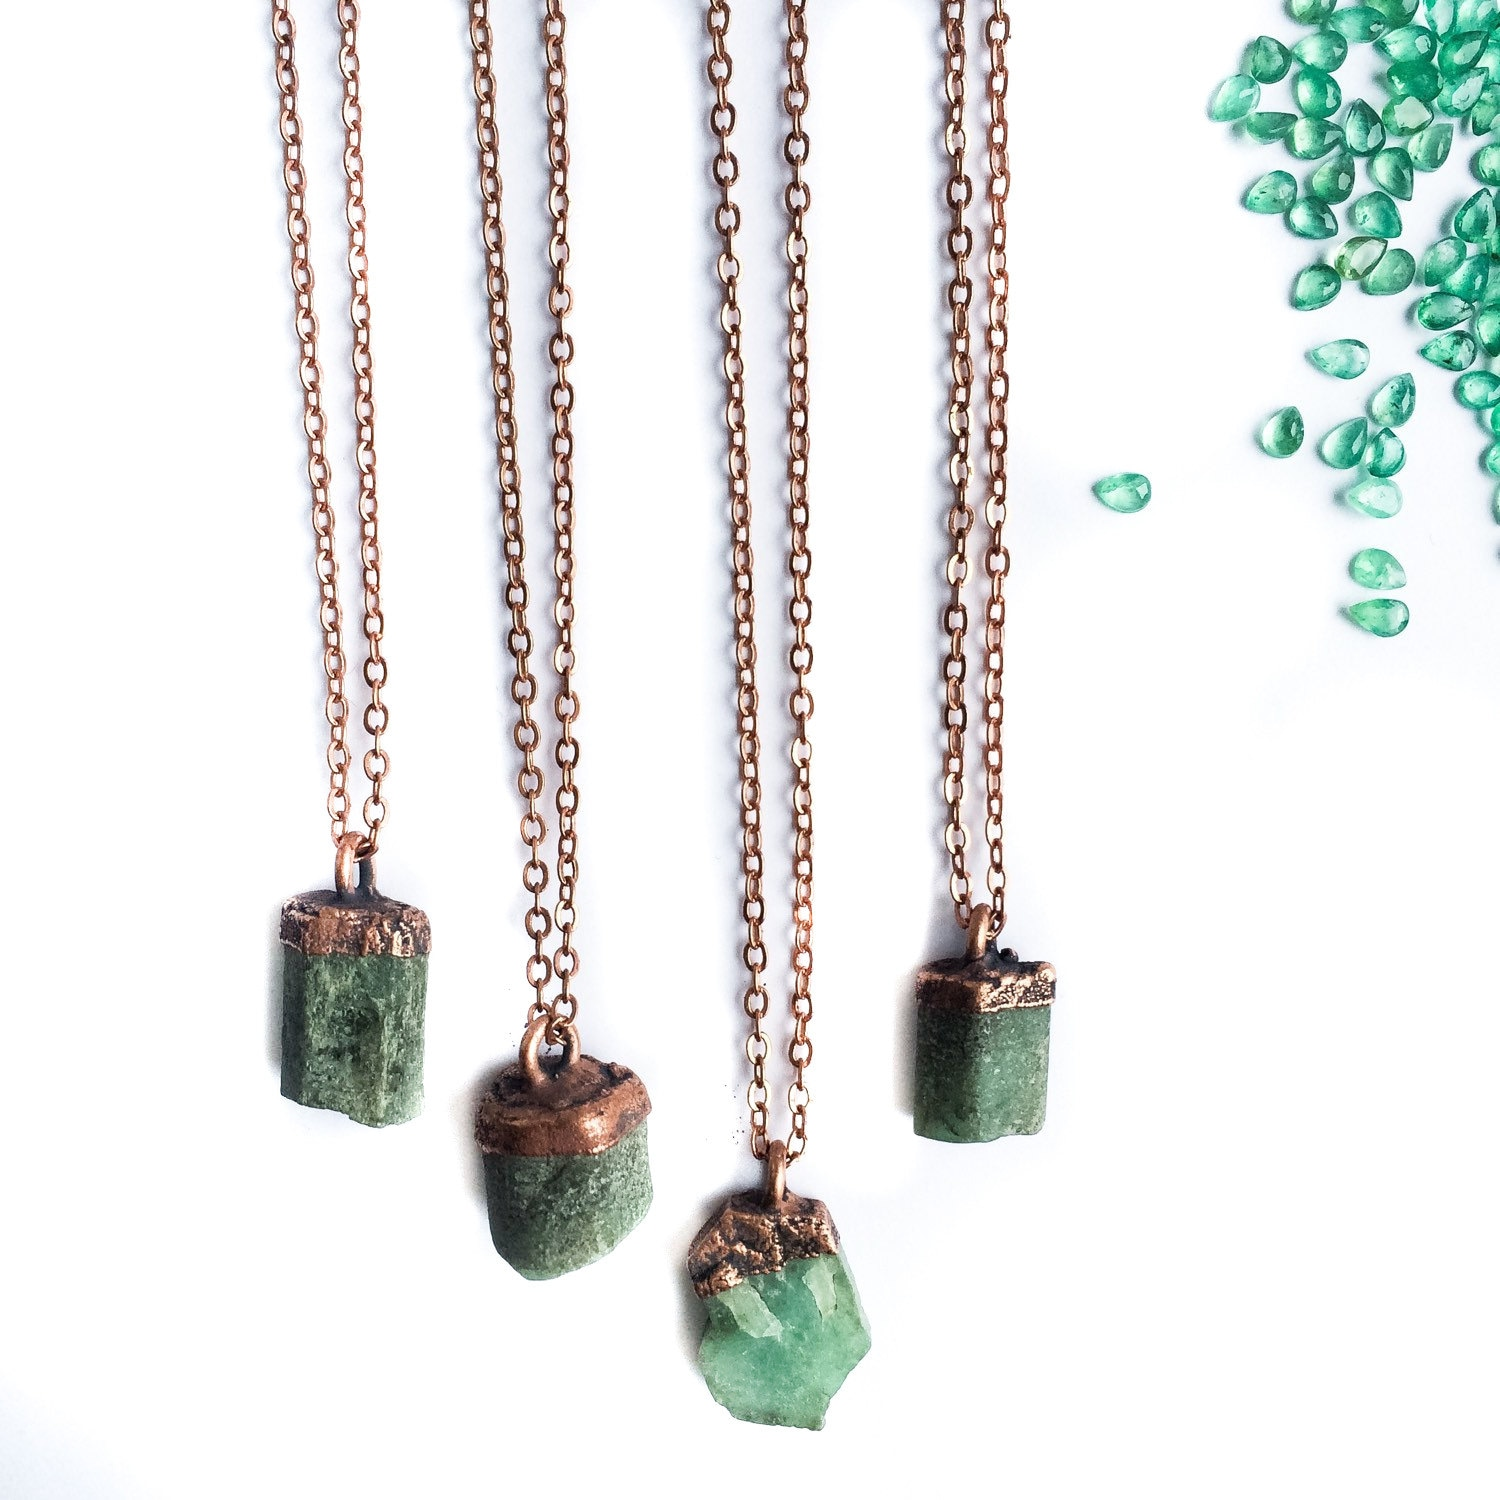 shop subsampling one diamond kind diamonds bayco the and colombian false with crop scale necklace product emerald upscale a of